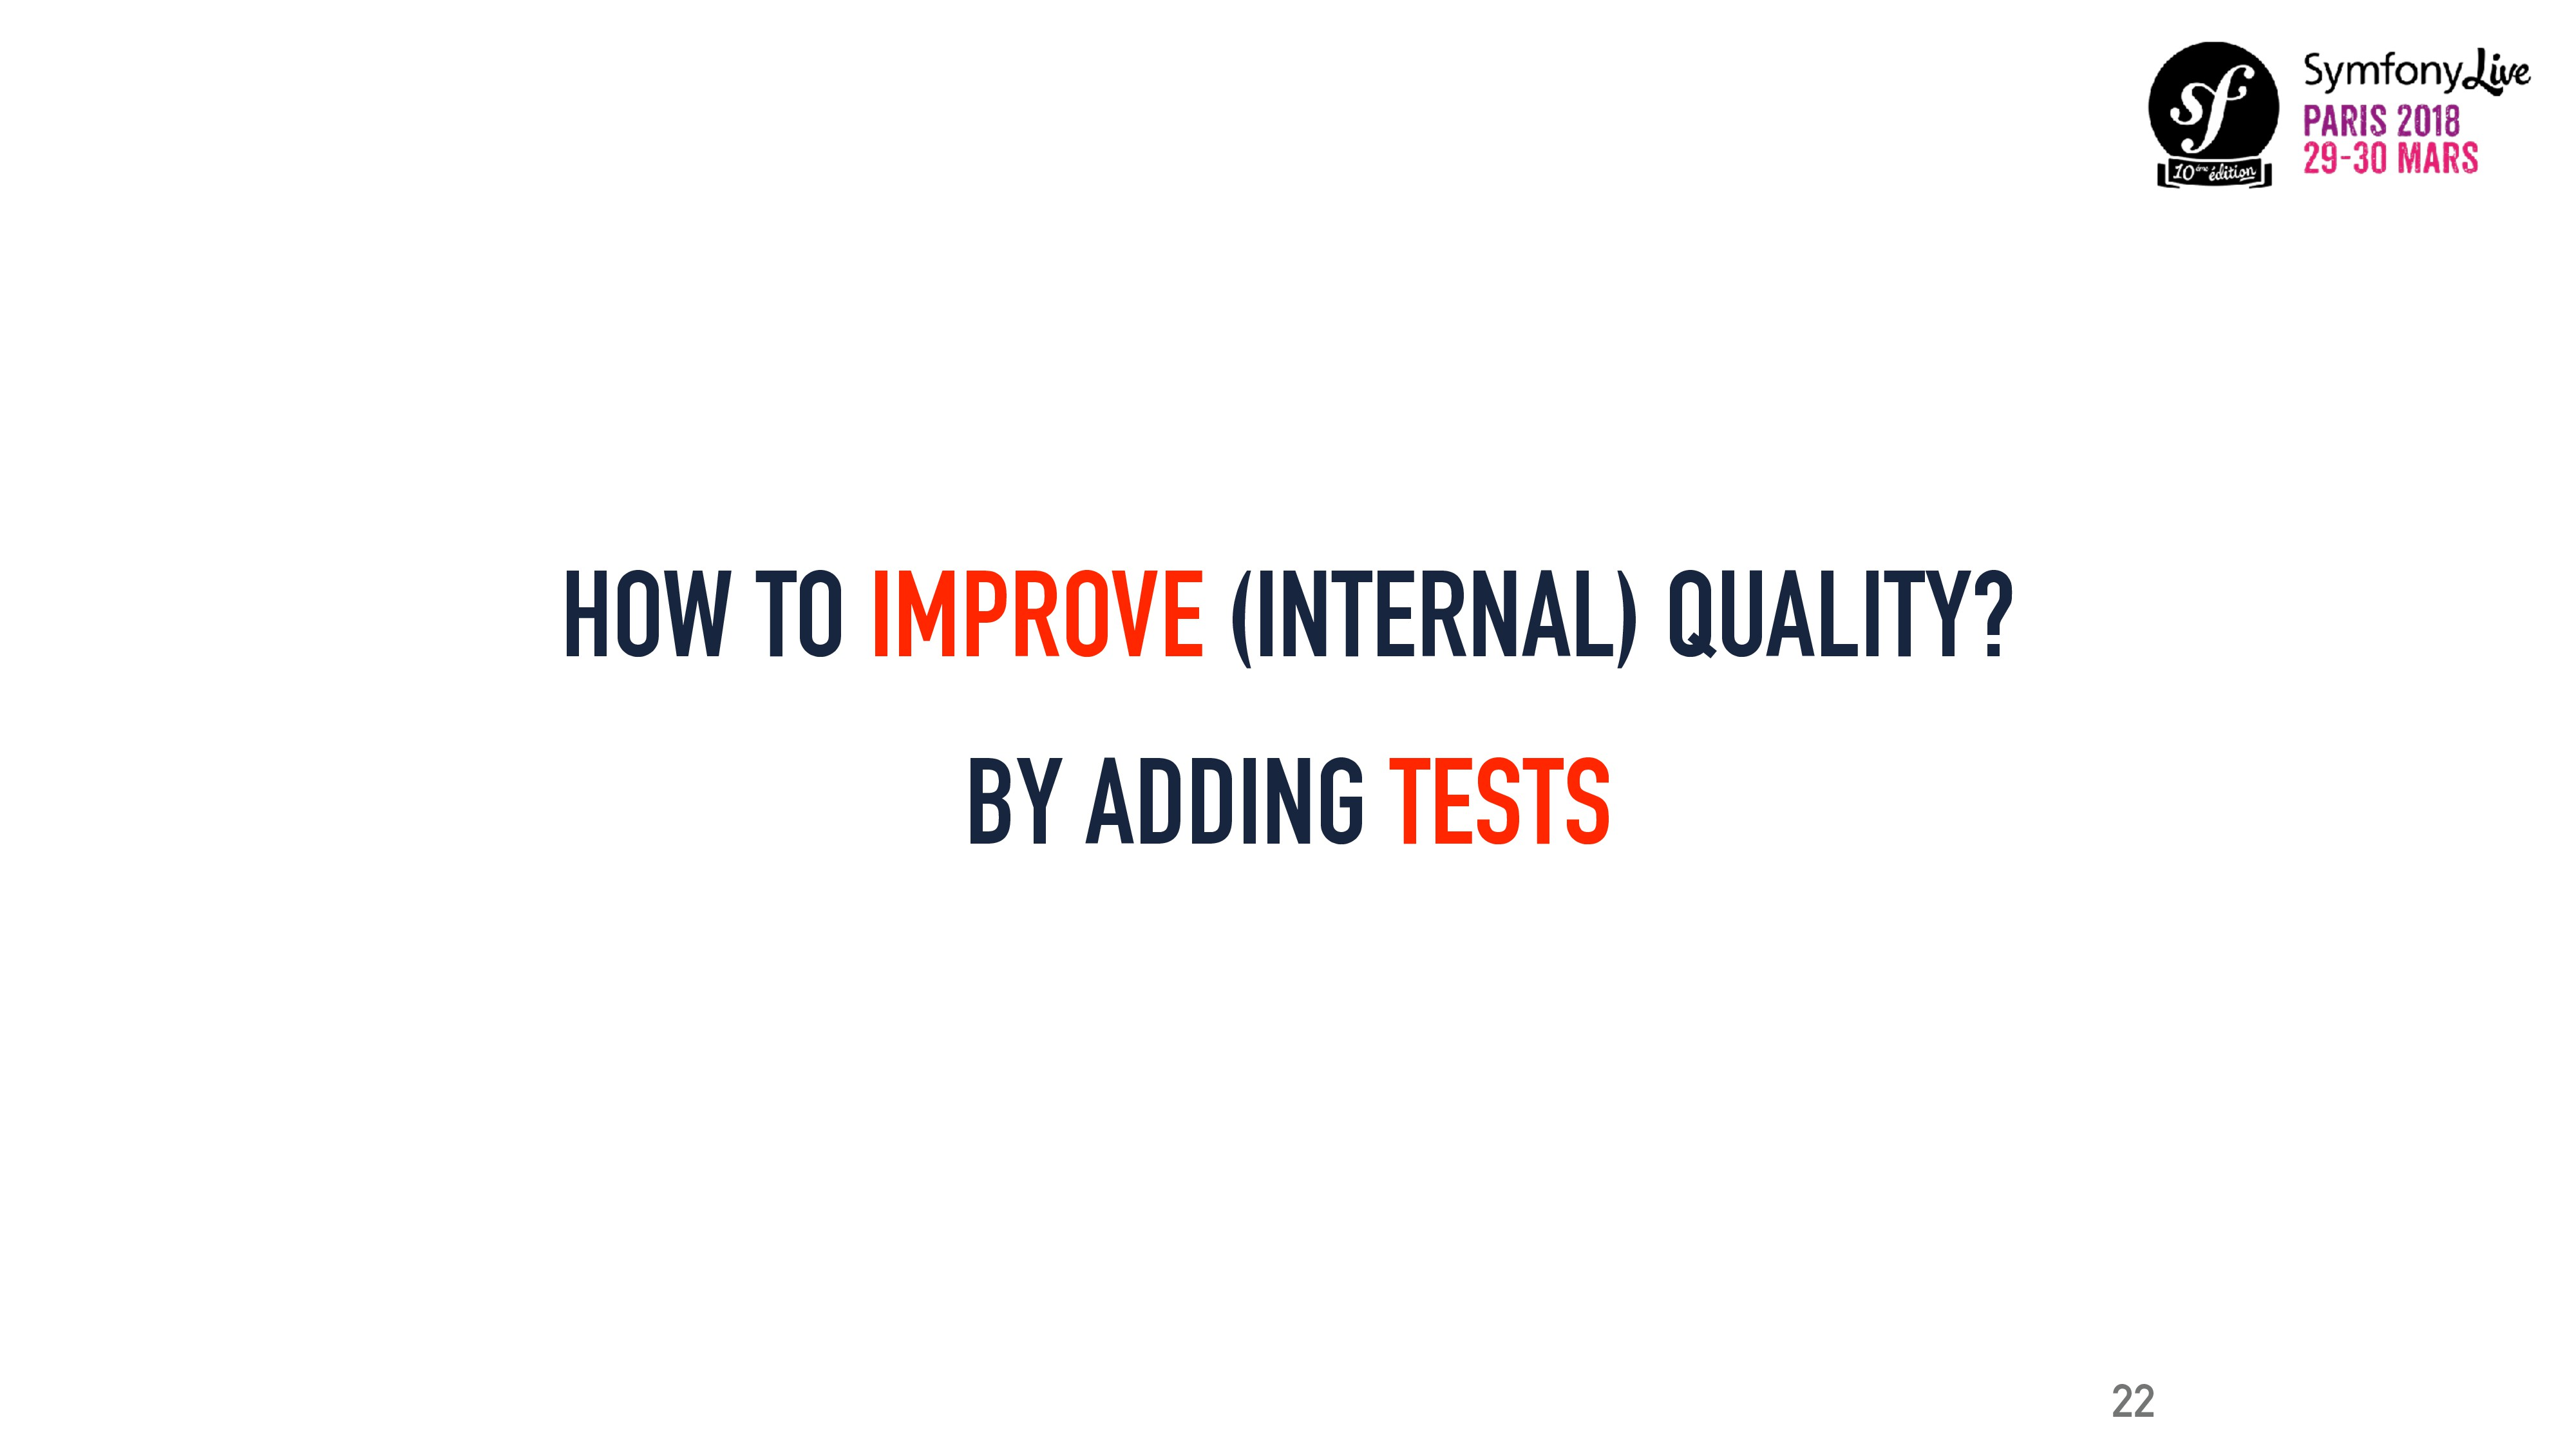 HOW TO IMPROVE (INTERNAL) QUALITY? 22 BY ADDING...